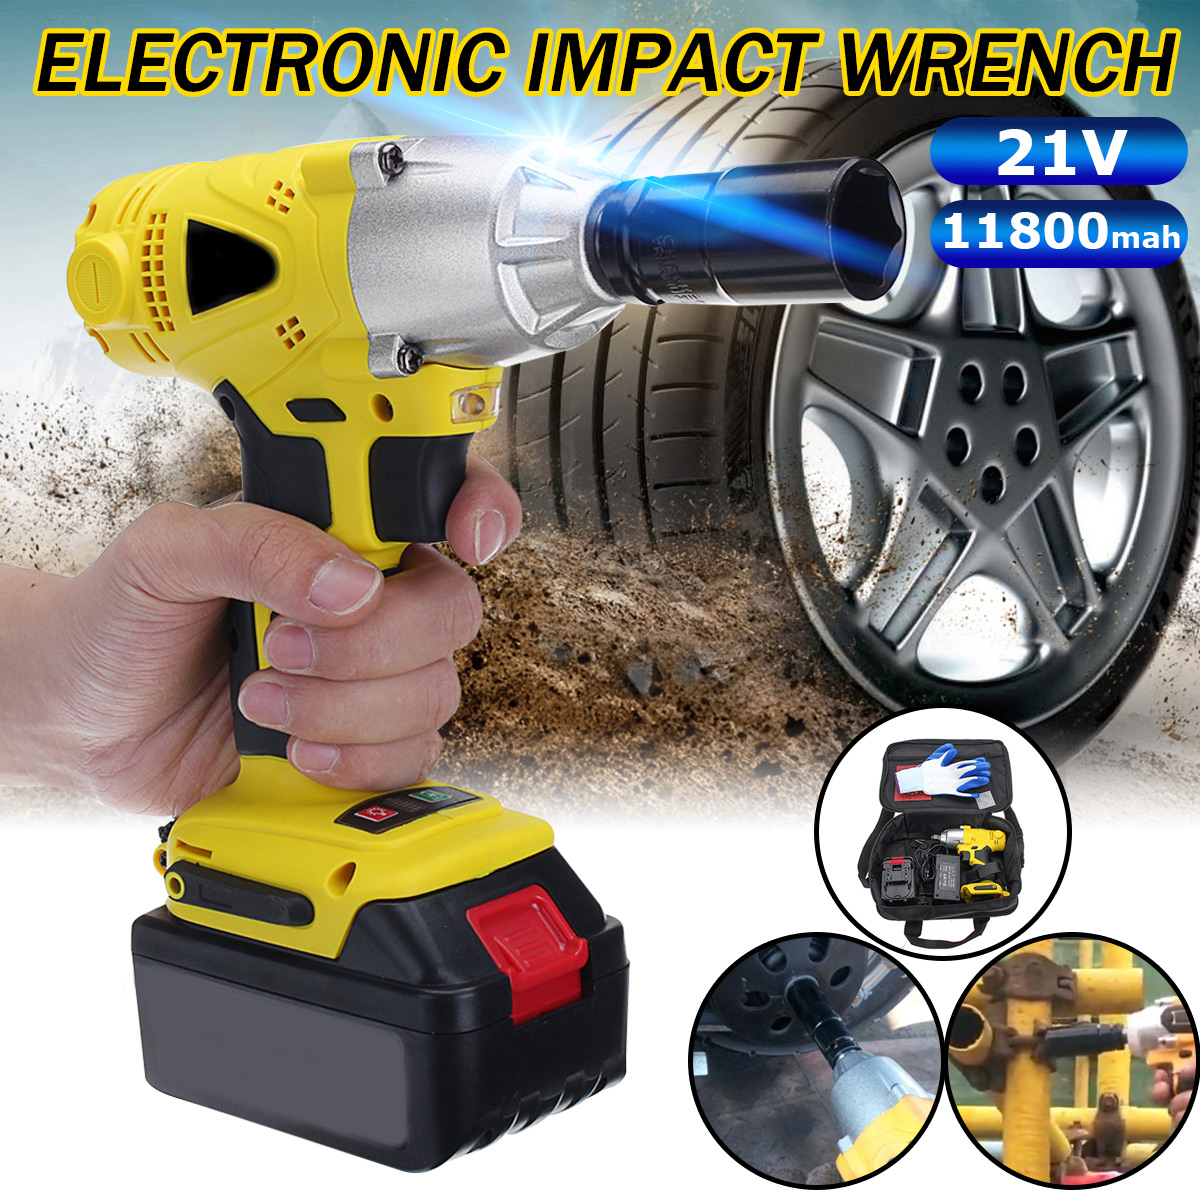 Doersupp 21V 11800mAh External Brushless Motor Rechargeable Lithium Electric Wrench Kit 280N/m Cordless Power Tool With Bag tenwa 21v 4000mah electric impact wrench home repair power tool lithium battery cordless wrench 280n m brush brushless drill